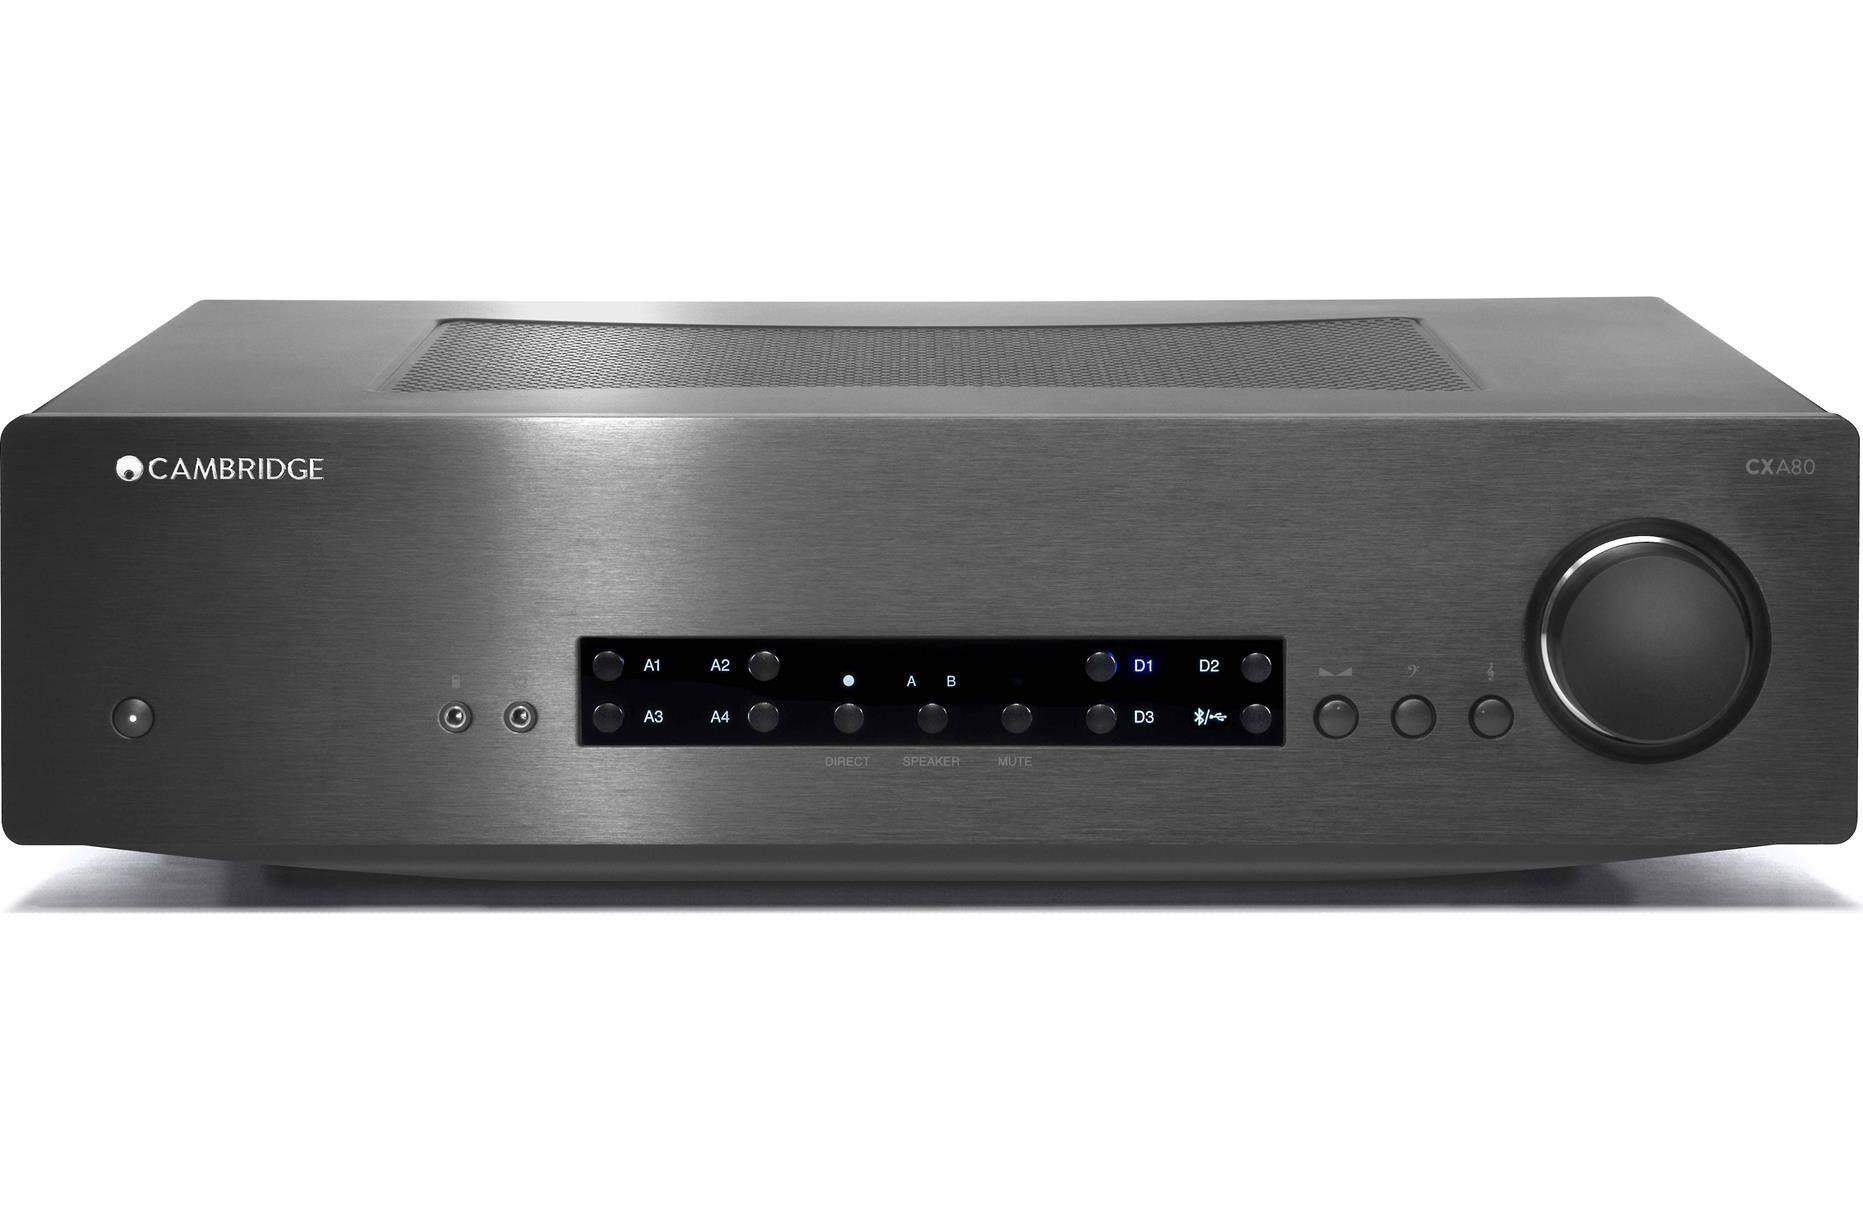 Cambridge audio cxa80 stereo integrated amplifier with built in dac and usb input